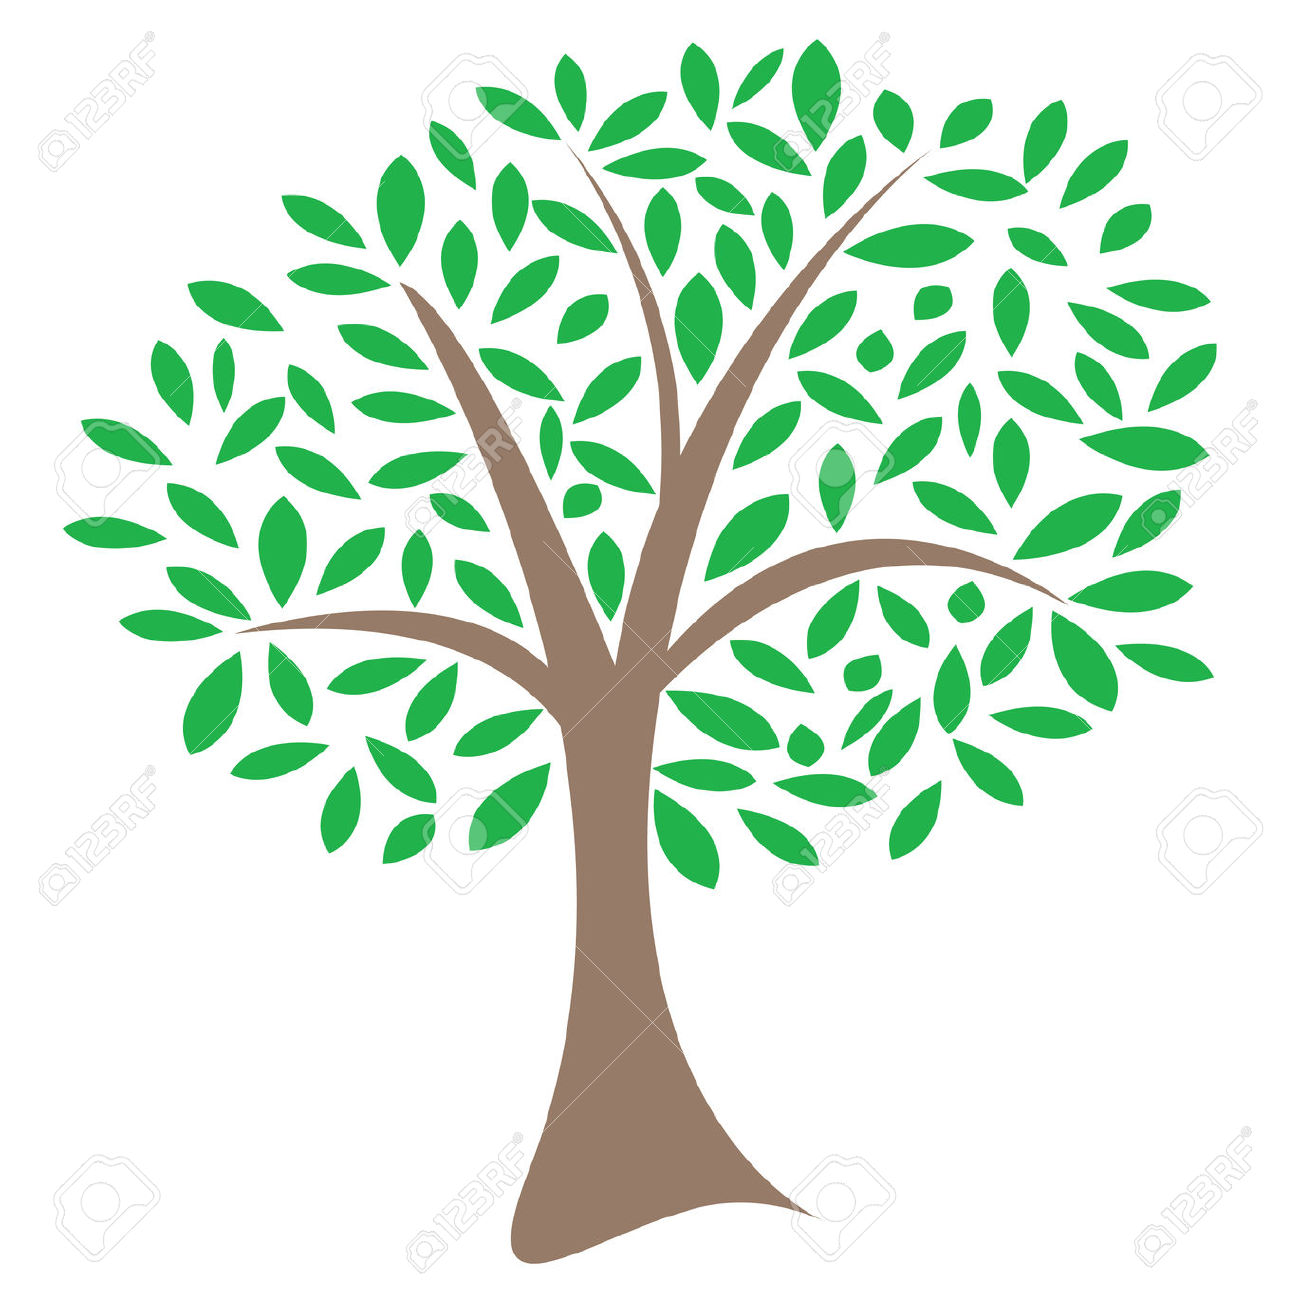 Vector Image Of A Lone Tree With Leaves In A Random Pattern.